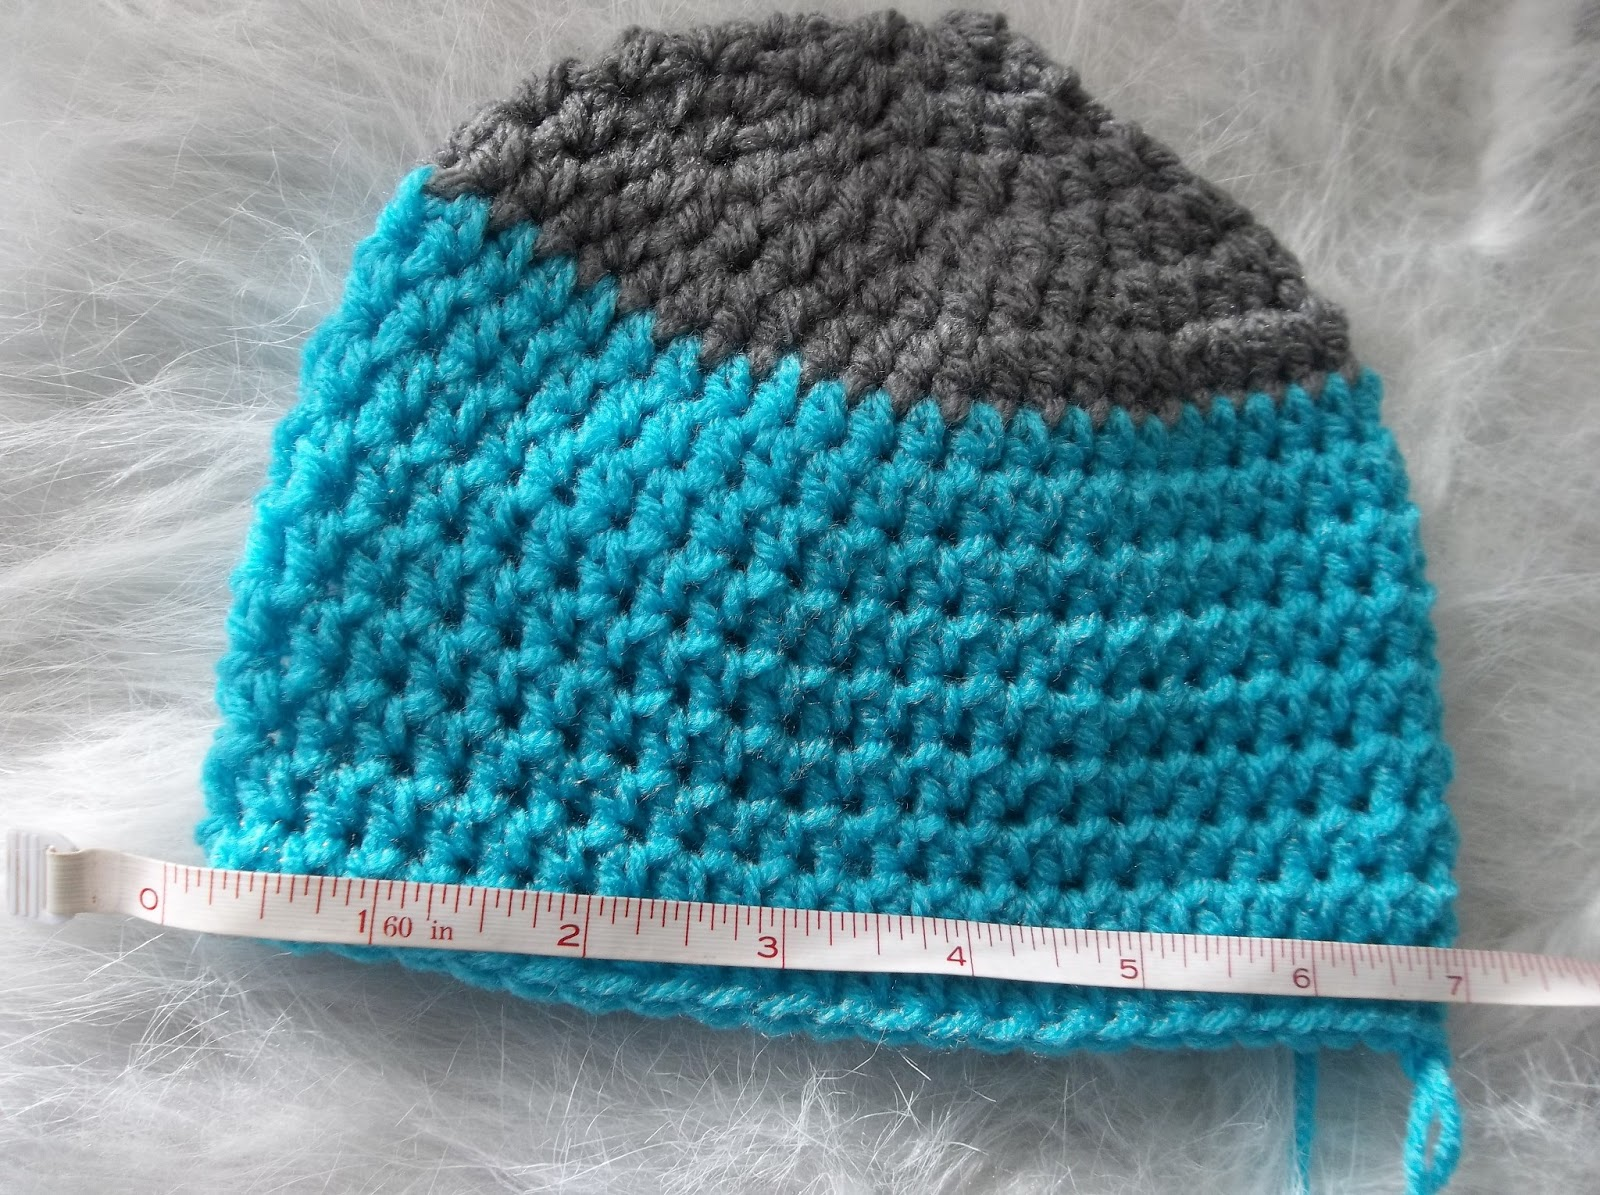 How To Crochet A Hat : Creating Beautiful Things in Life: How to Crochet a Properly Sized Hat